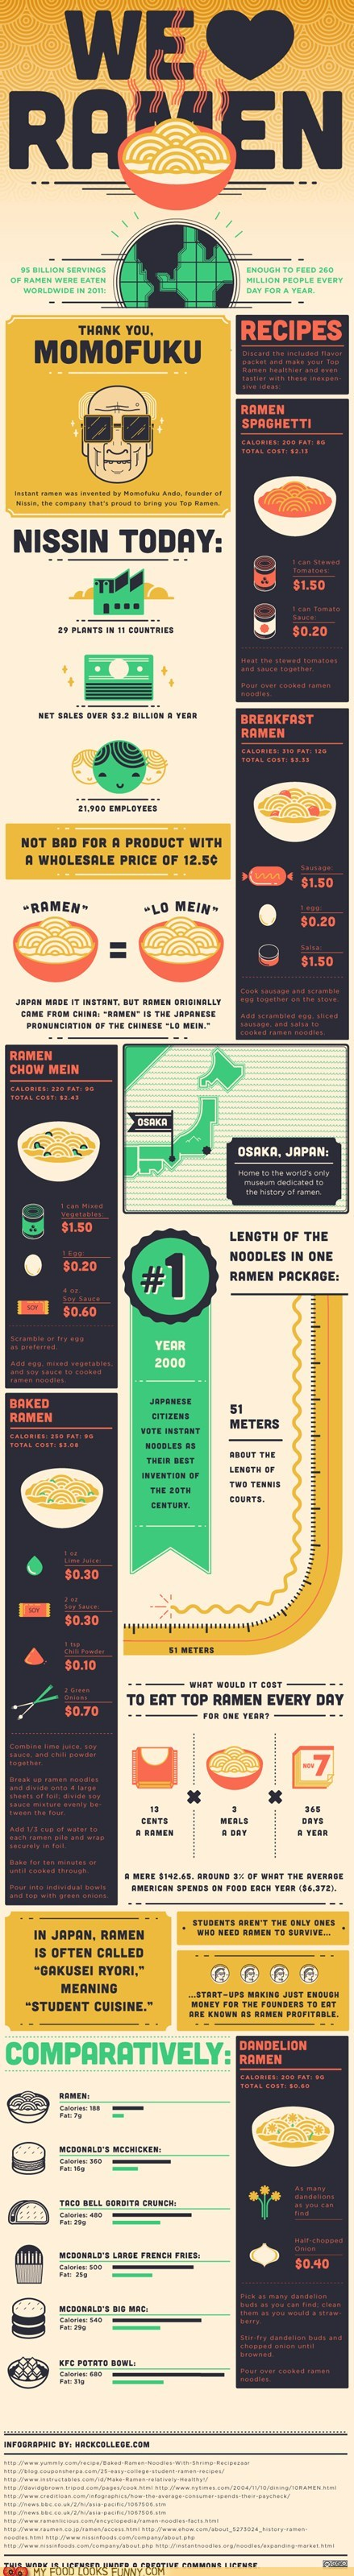 best of the week history infographic noodles ramen recipes